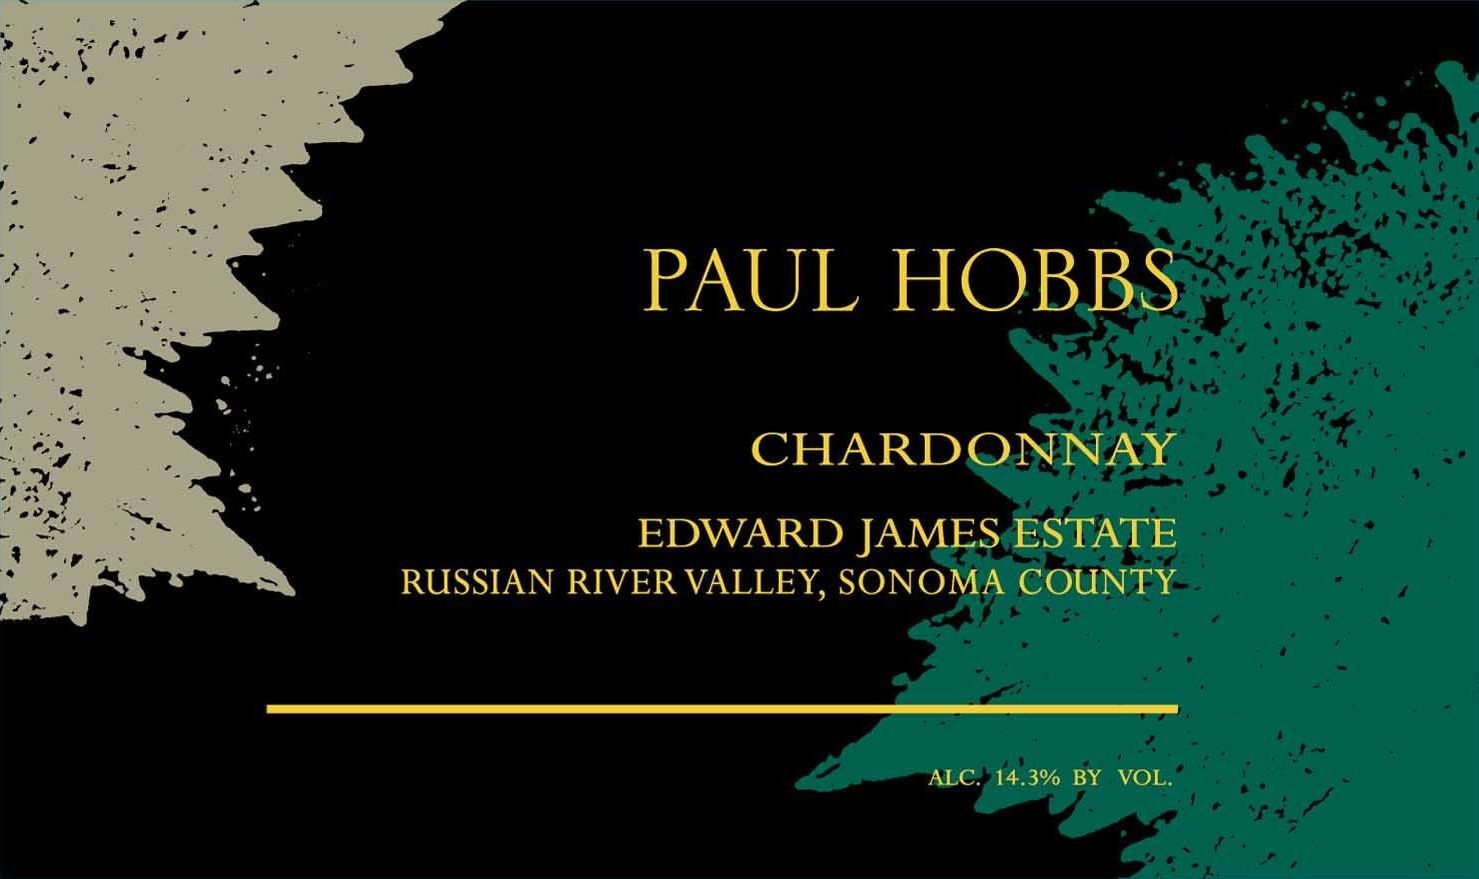 Paul Hobbs Edward James Chardonnay 2017  Front Label